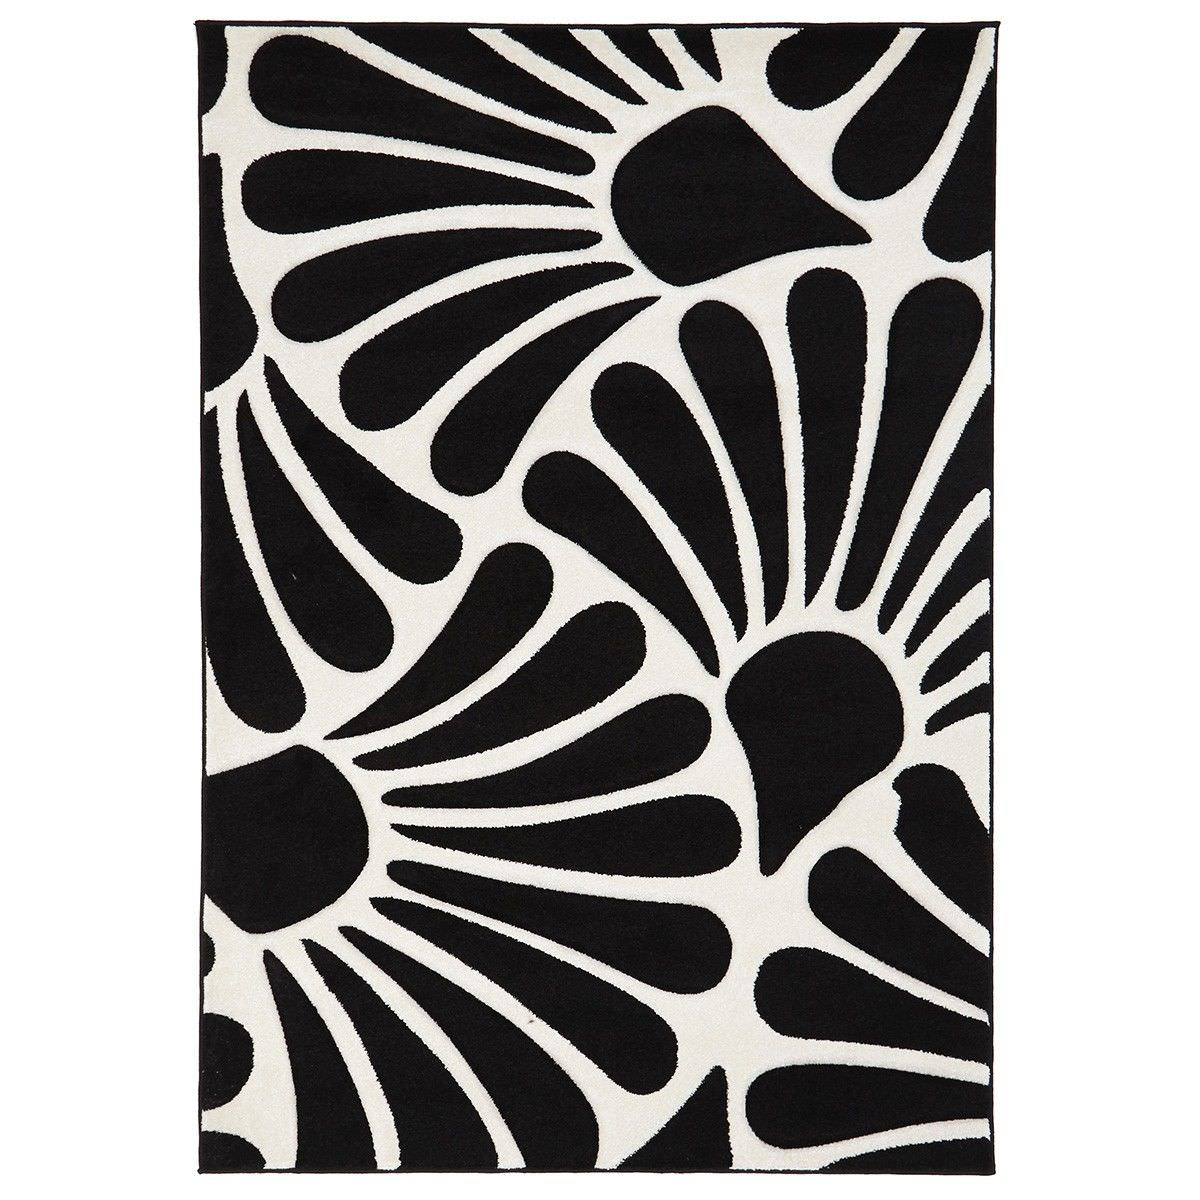 Icon Fern Turkish Made Modern Rug, 290x200cm, Black / White